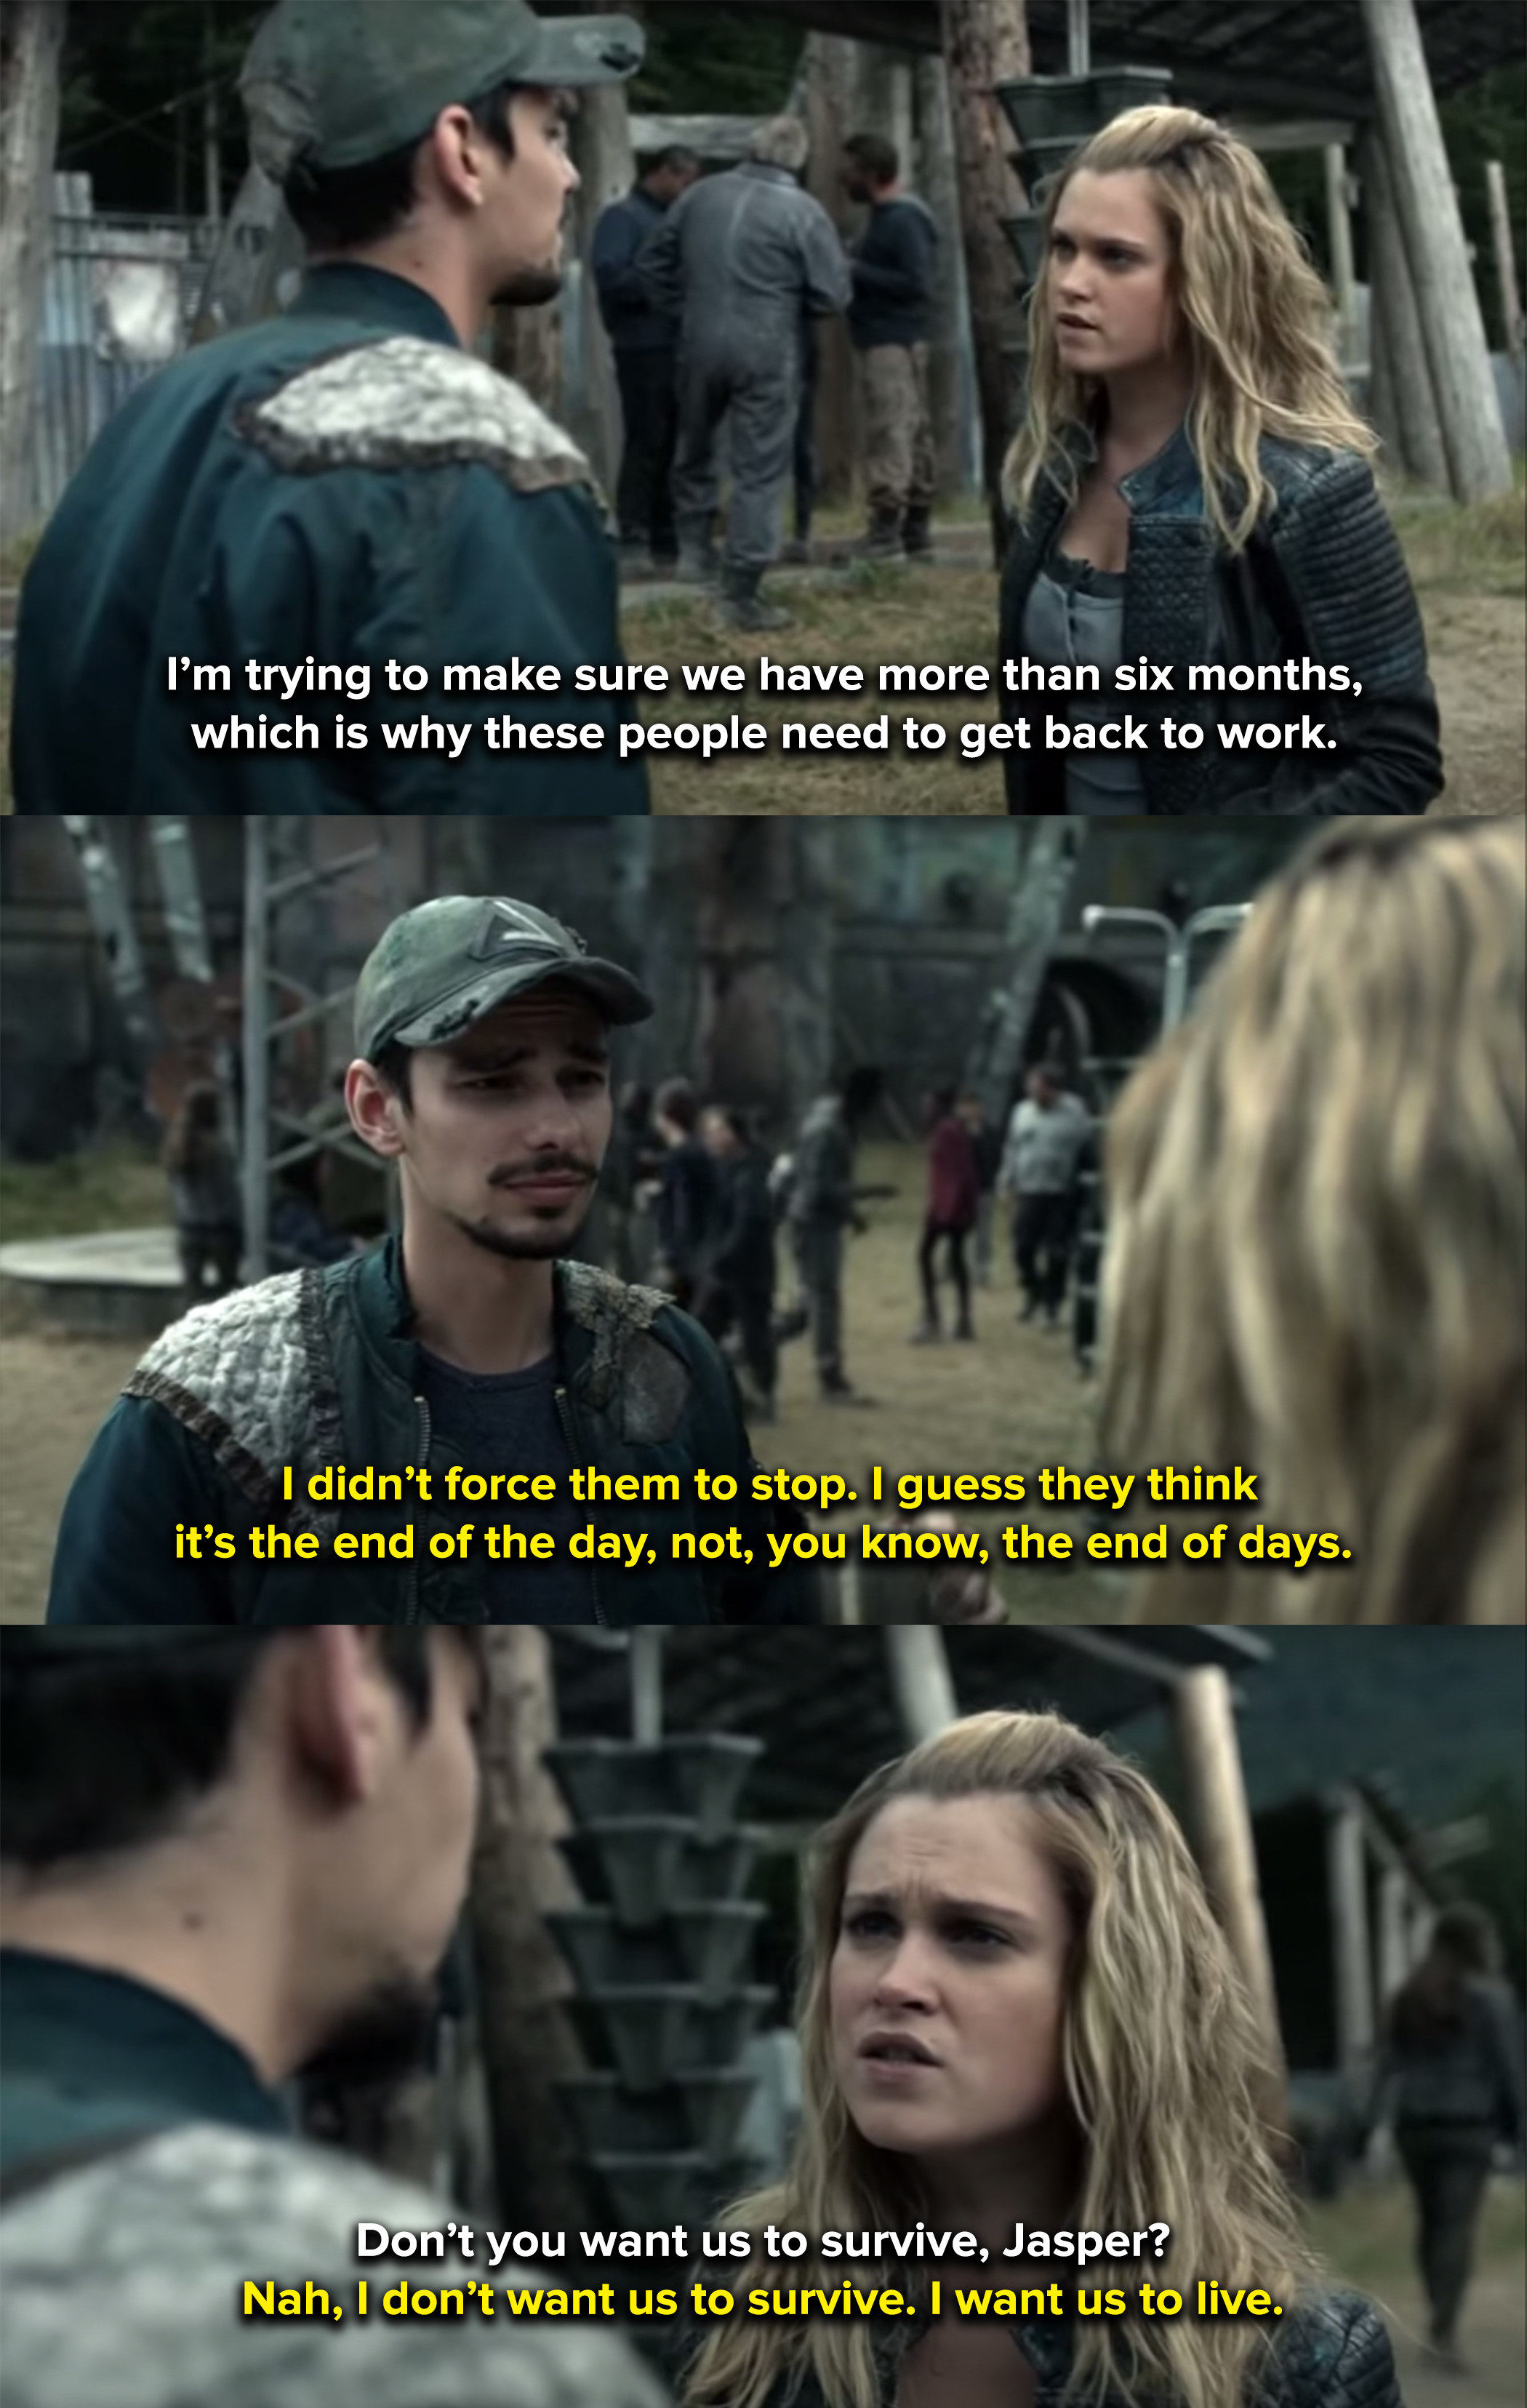 Jasper tells Clarke he'd rather everyone live in the moment than fight to survive